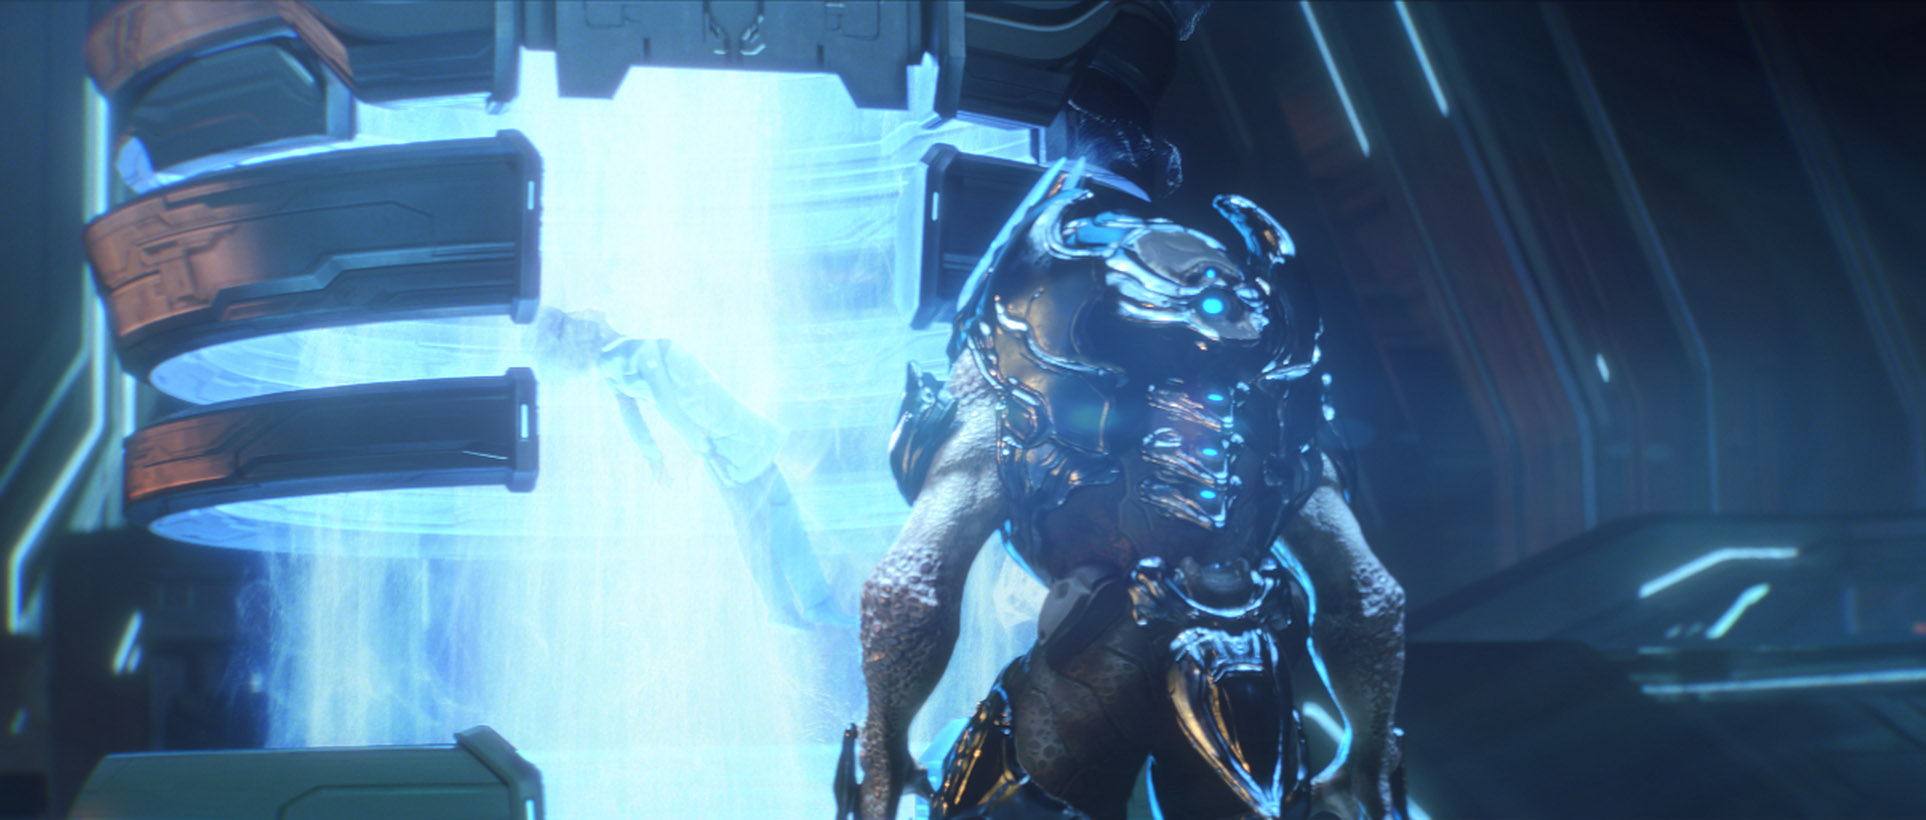 Halo 4 spartan ops episode 8 full cinematic : Tv series apples way